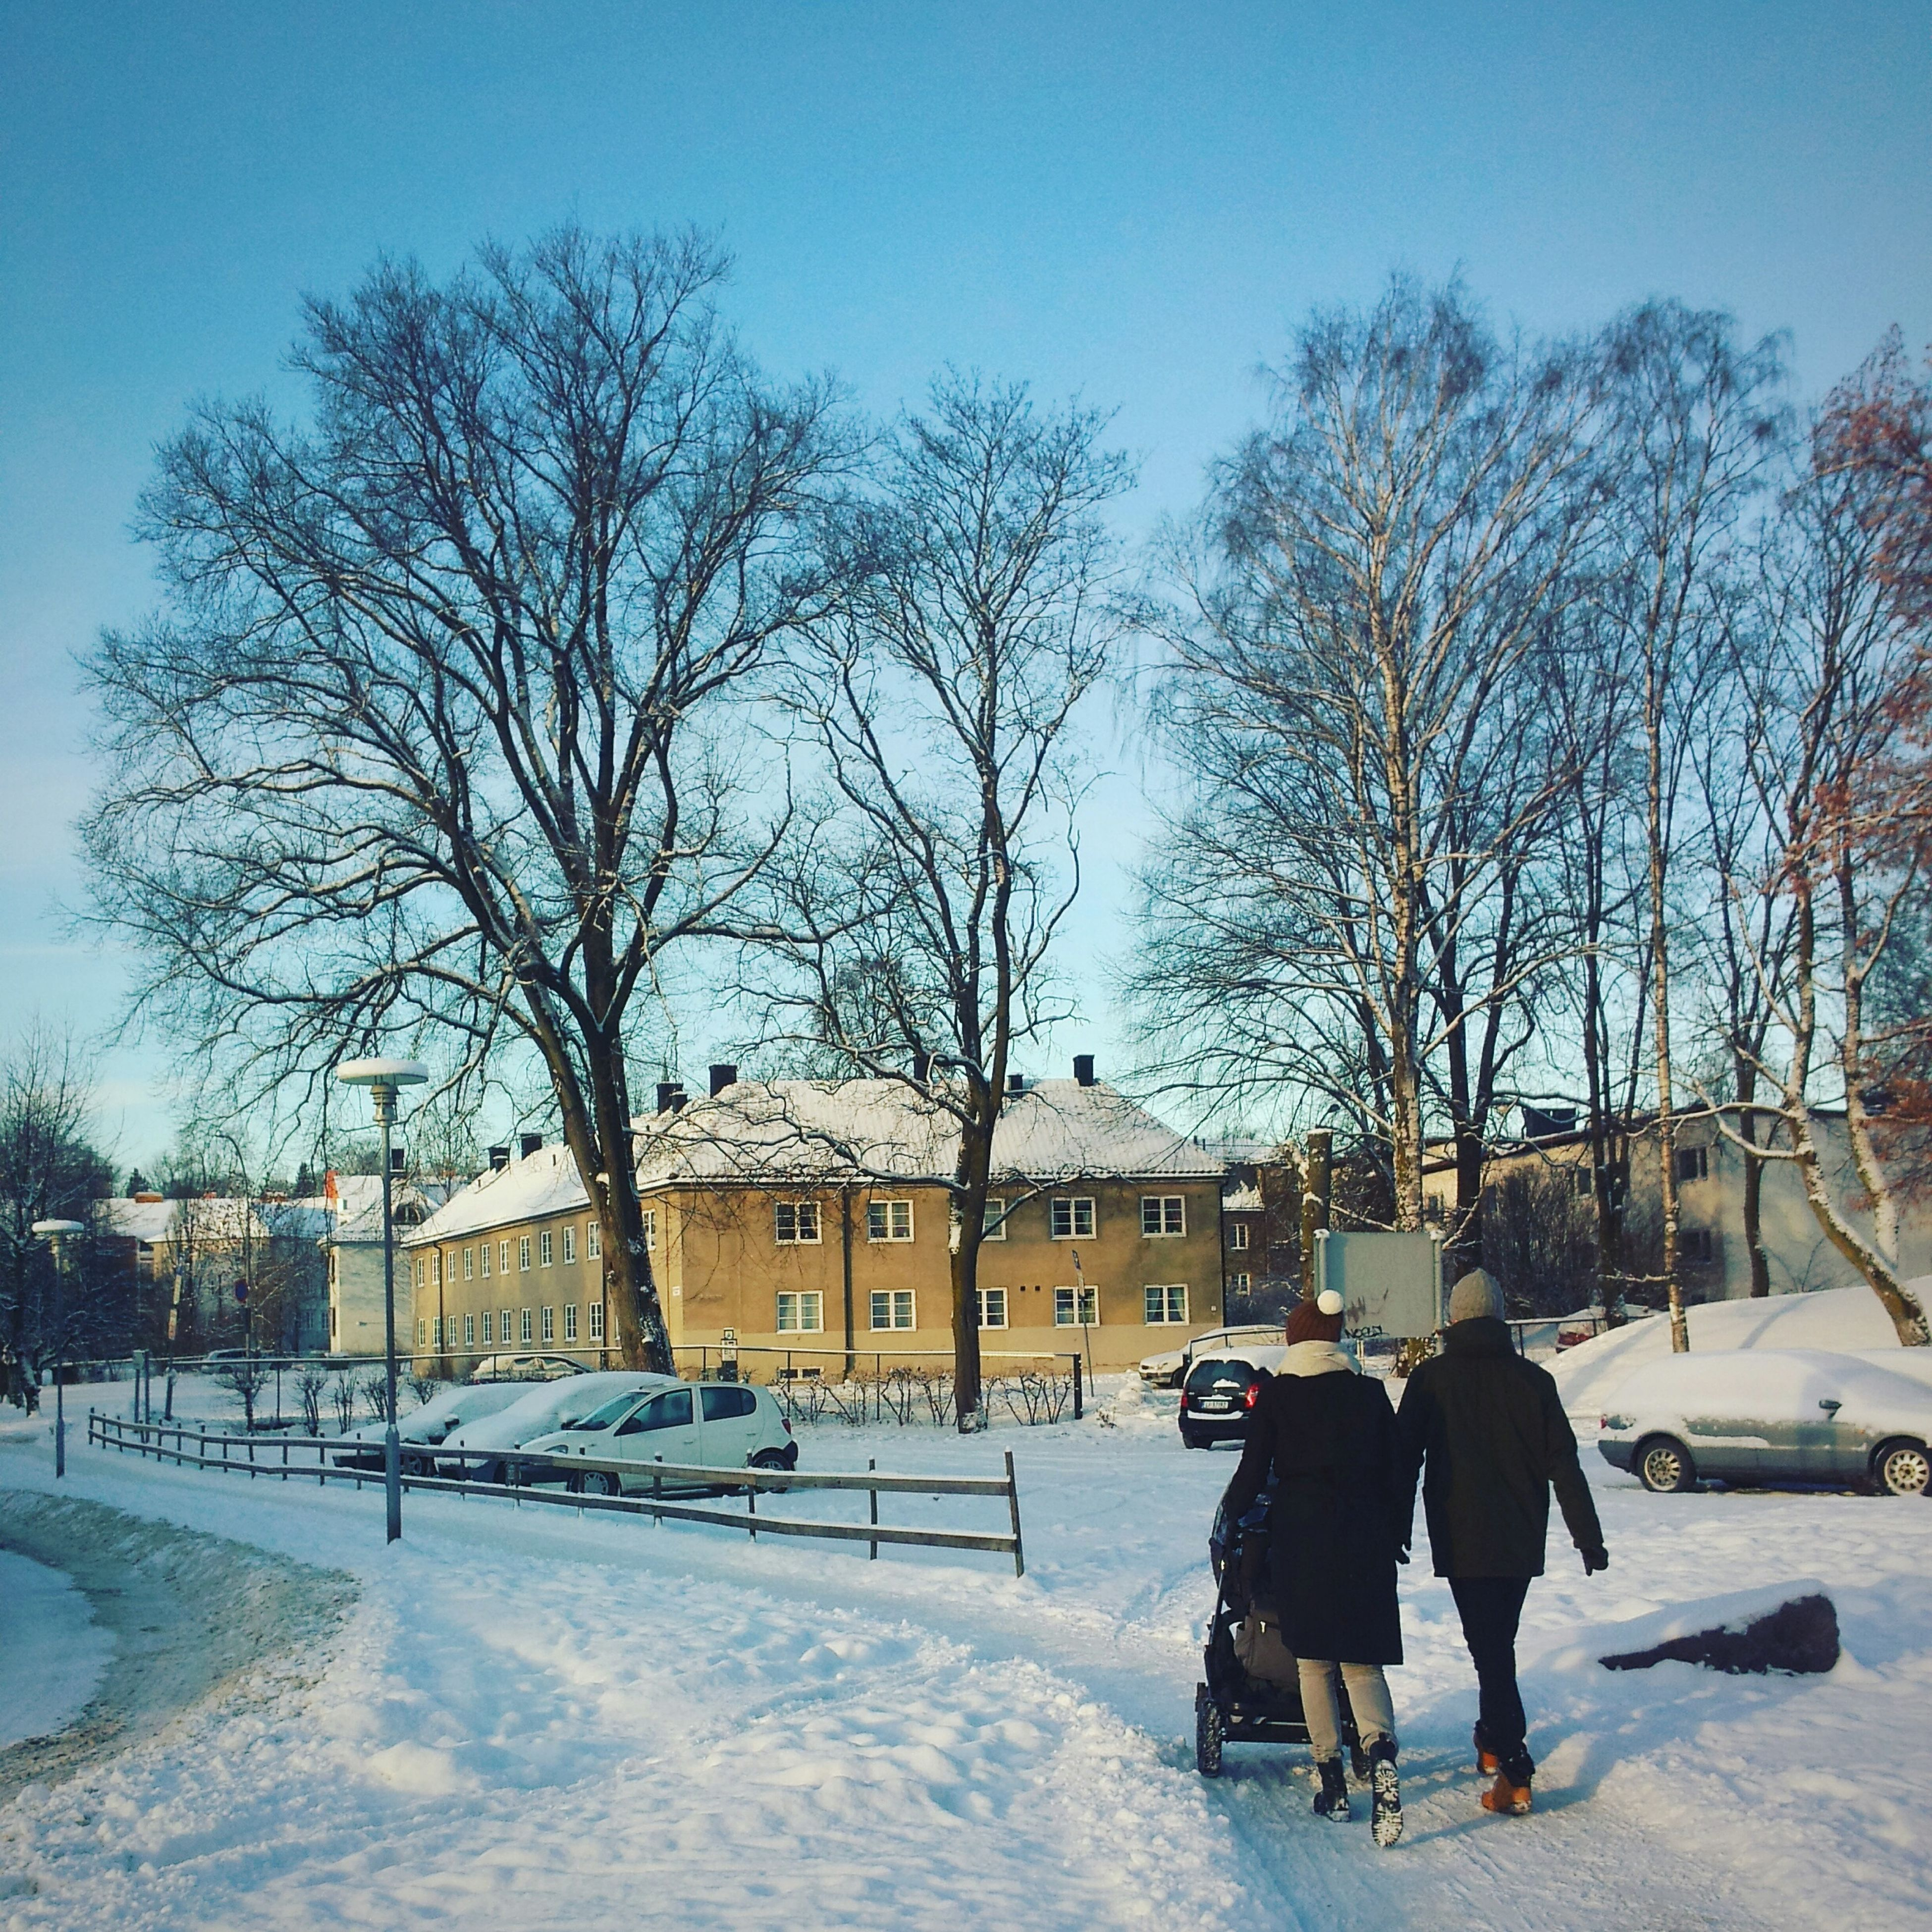 winter, cold temperature, snow, bare tree, tree, season, lifestyles, men, leisure activity, rear view, clear sky, full length, person, walking, building exterior, built structure, weather